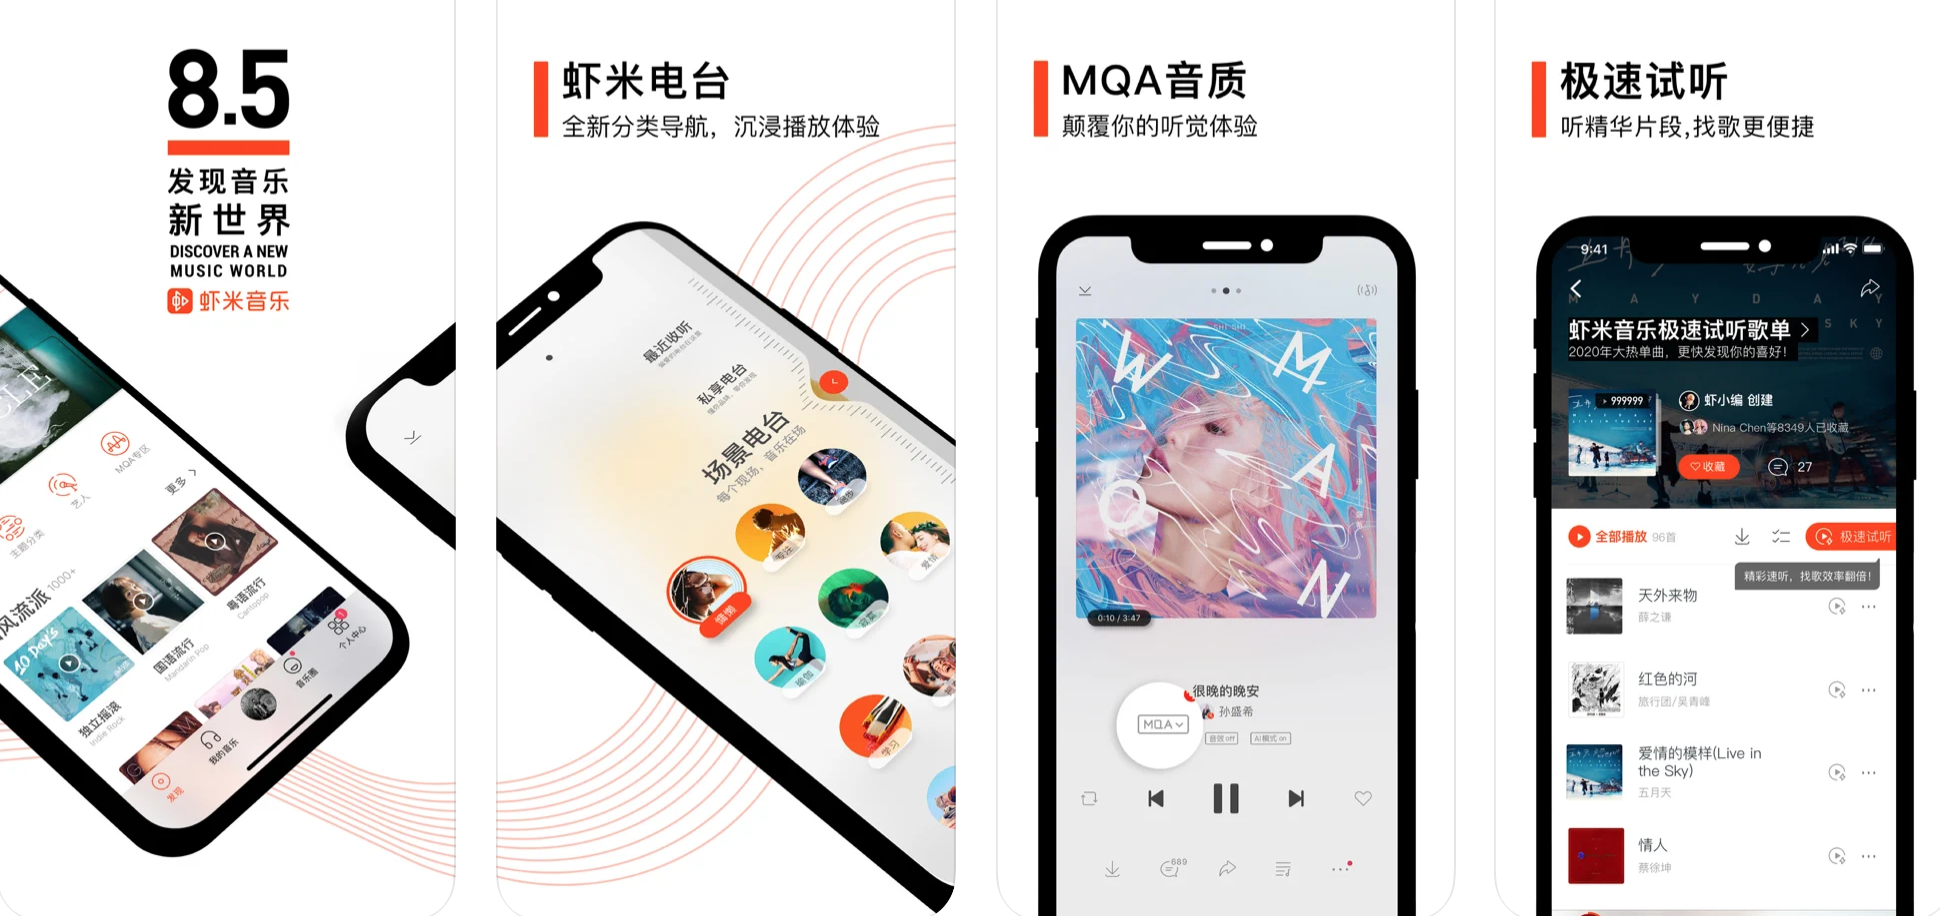 Alibaba shuts down 12-year-old music streaming app Xiami – Yahoo Finance Australia